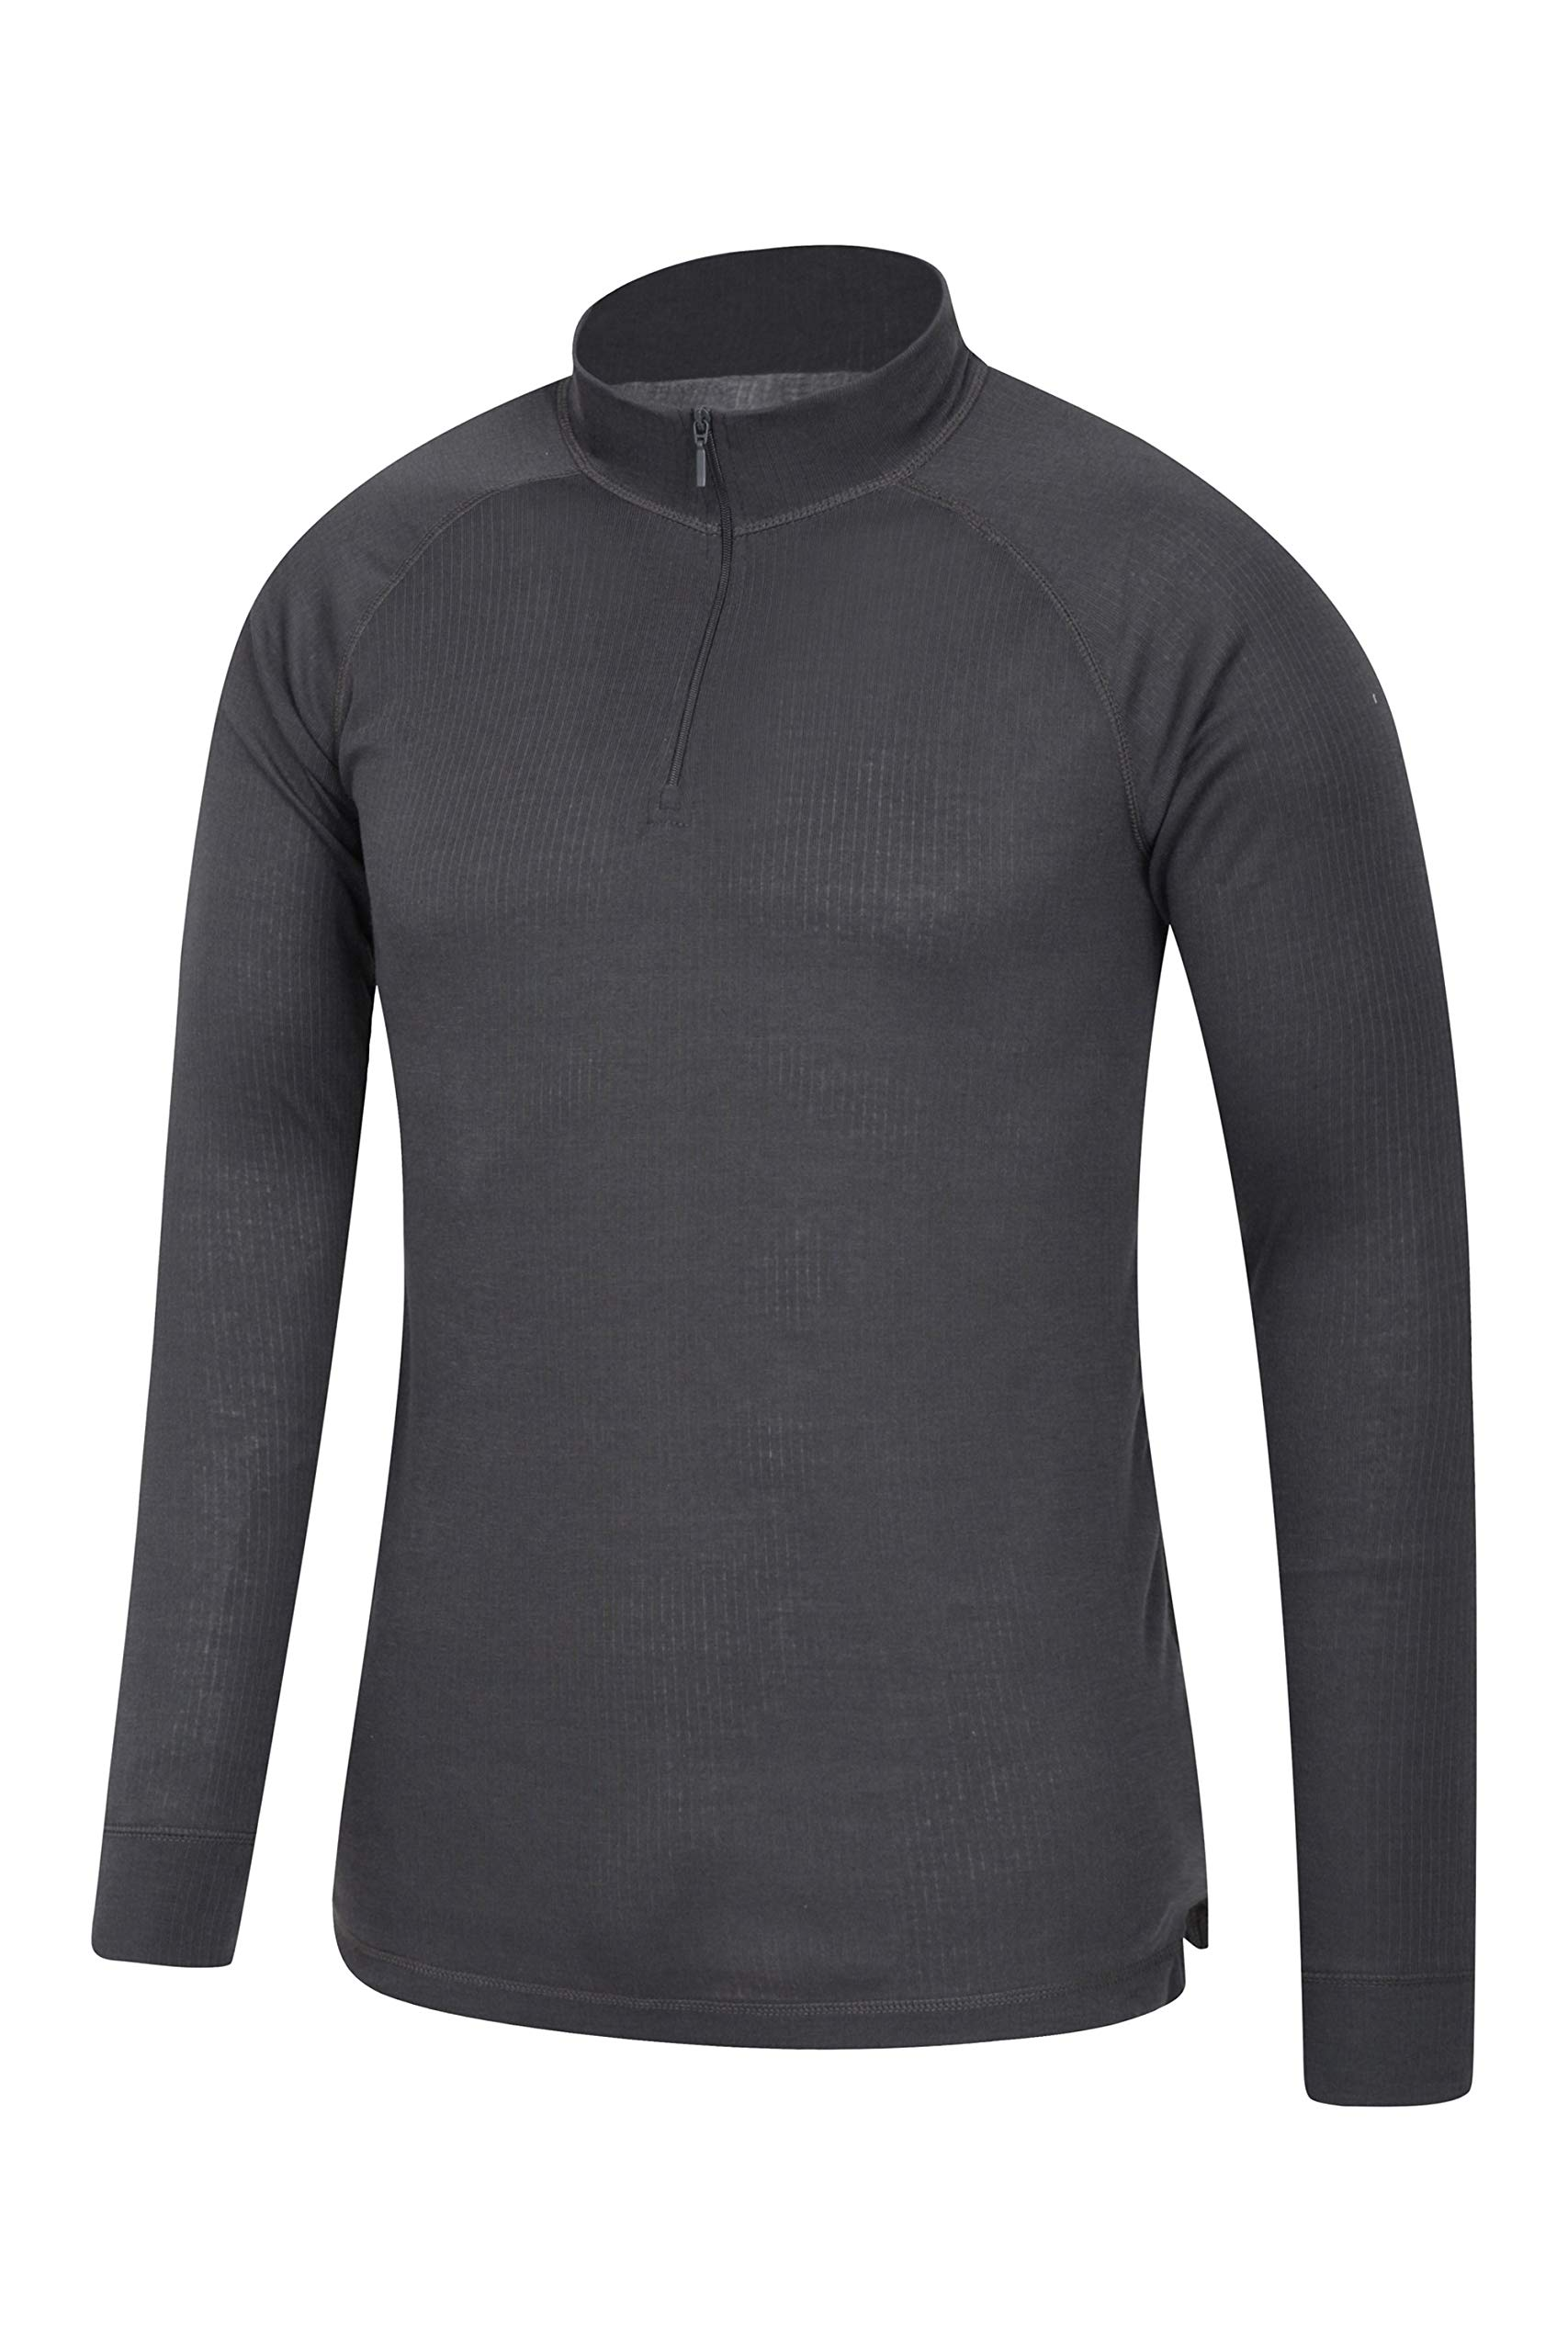 Mountain Warehouse Talus Mens Thermal Baselayer Top - Long Sleeve Sweater, Zip Neck, Quick Drying Pullover, Breathable, Lightweight - Great for Winter, Travelling 3